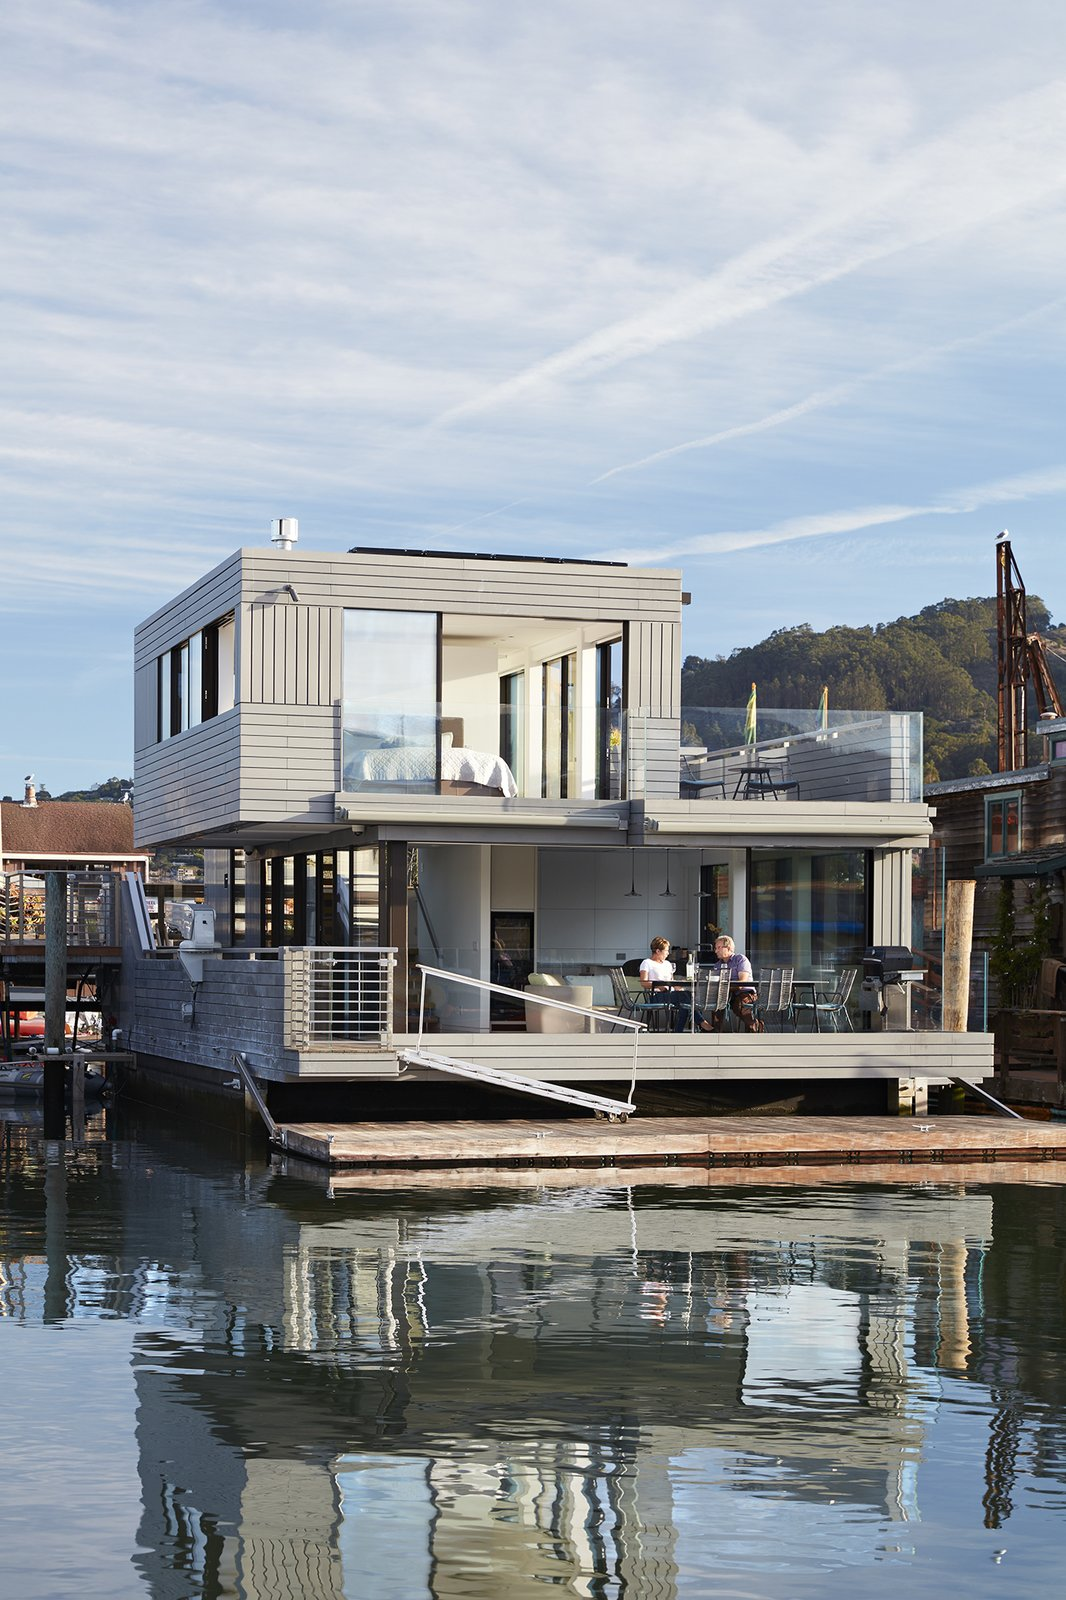 Automatic retractable Sky-Frame windows open the living room  completely on two sides. Tagged: Large Patio, Porch, Deck, Hanging Lighting, and Outdoor.  Floating Dreams Residence by Dwell from Water Sports